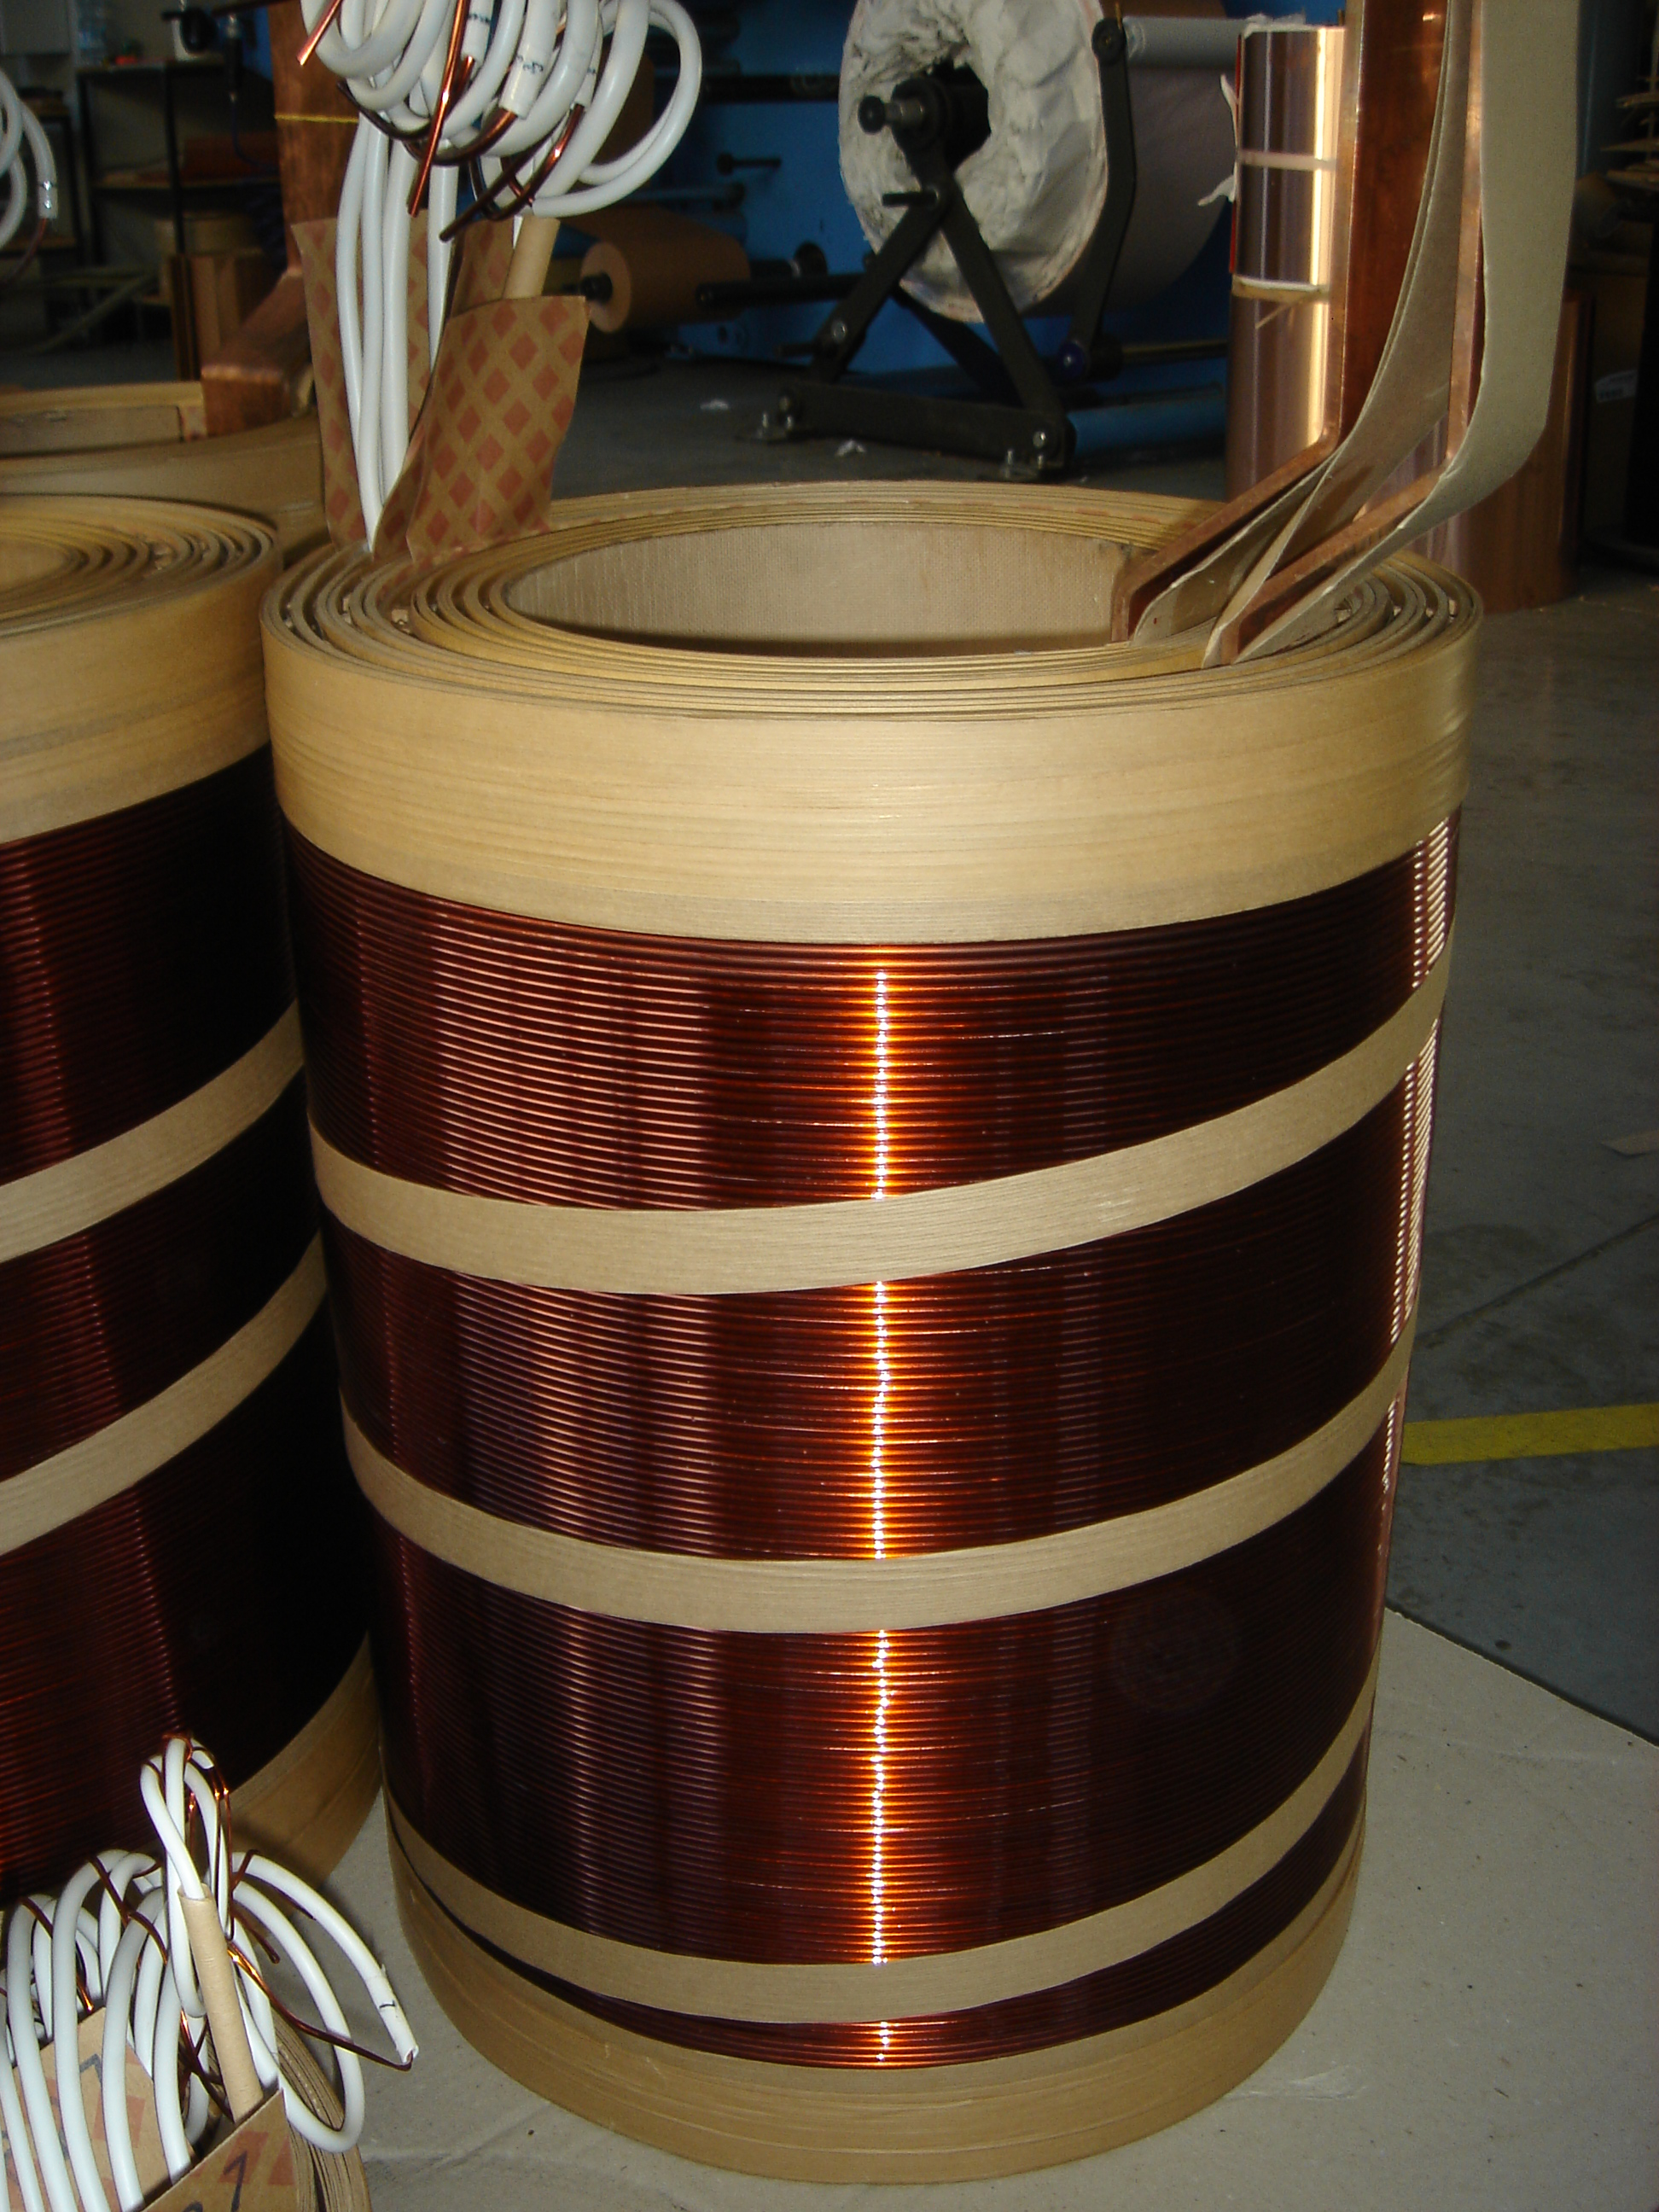 Windings for distribution and power transformers dry type, oil